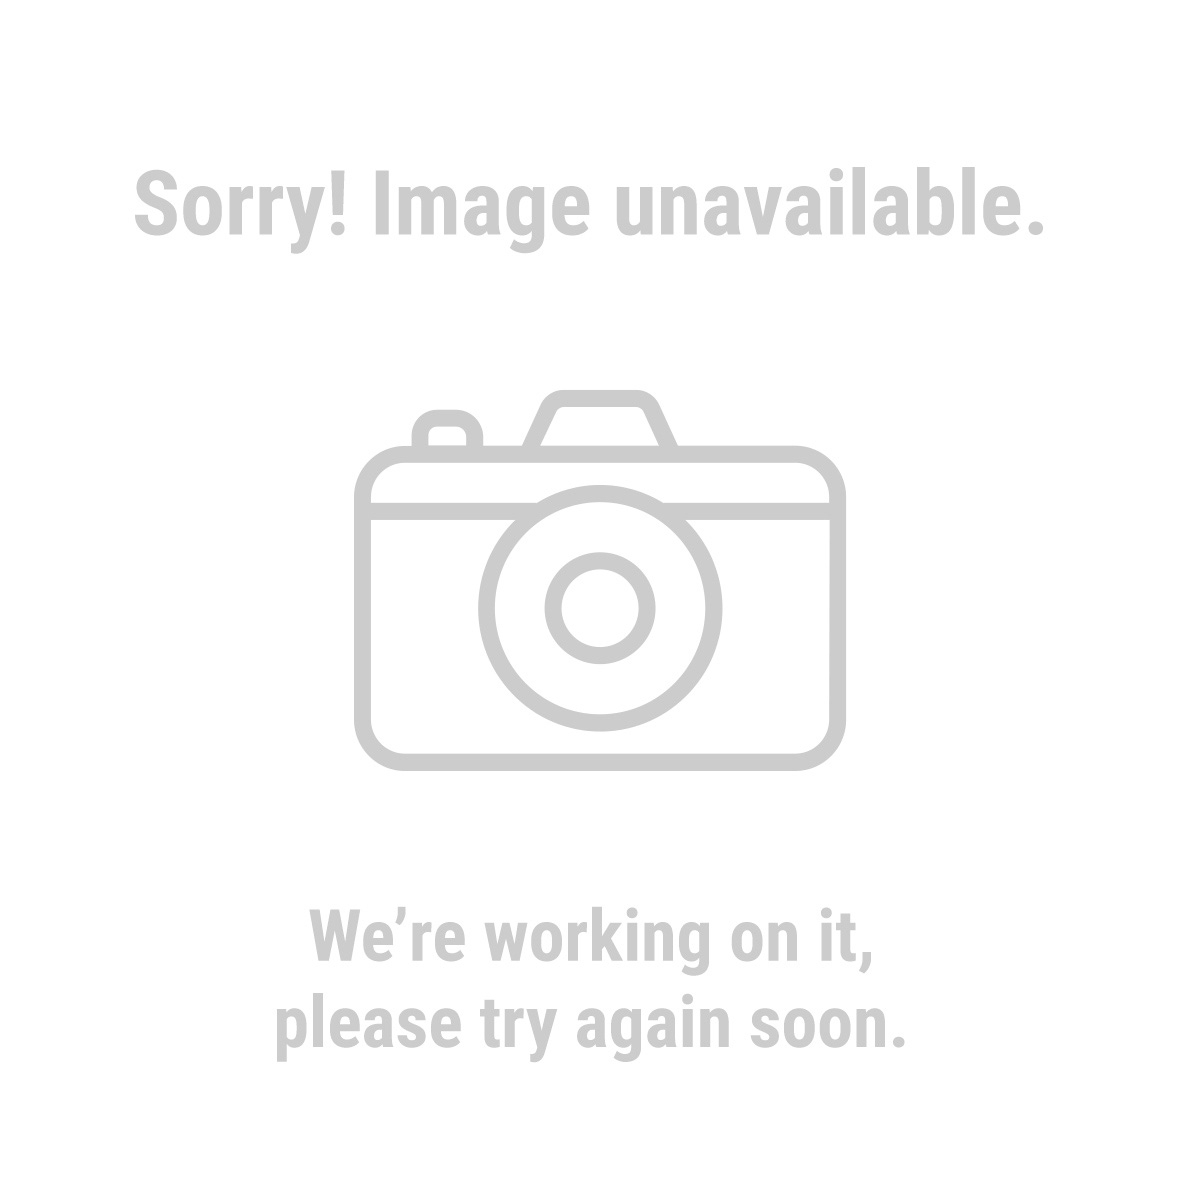 Predator Generators 68529 420cc, 6500 Watts Max/5500 Watts Rated Portable Generator